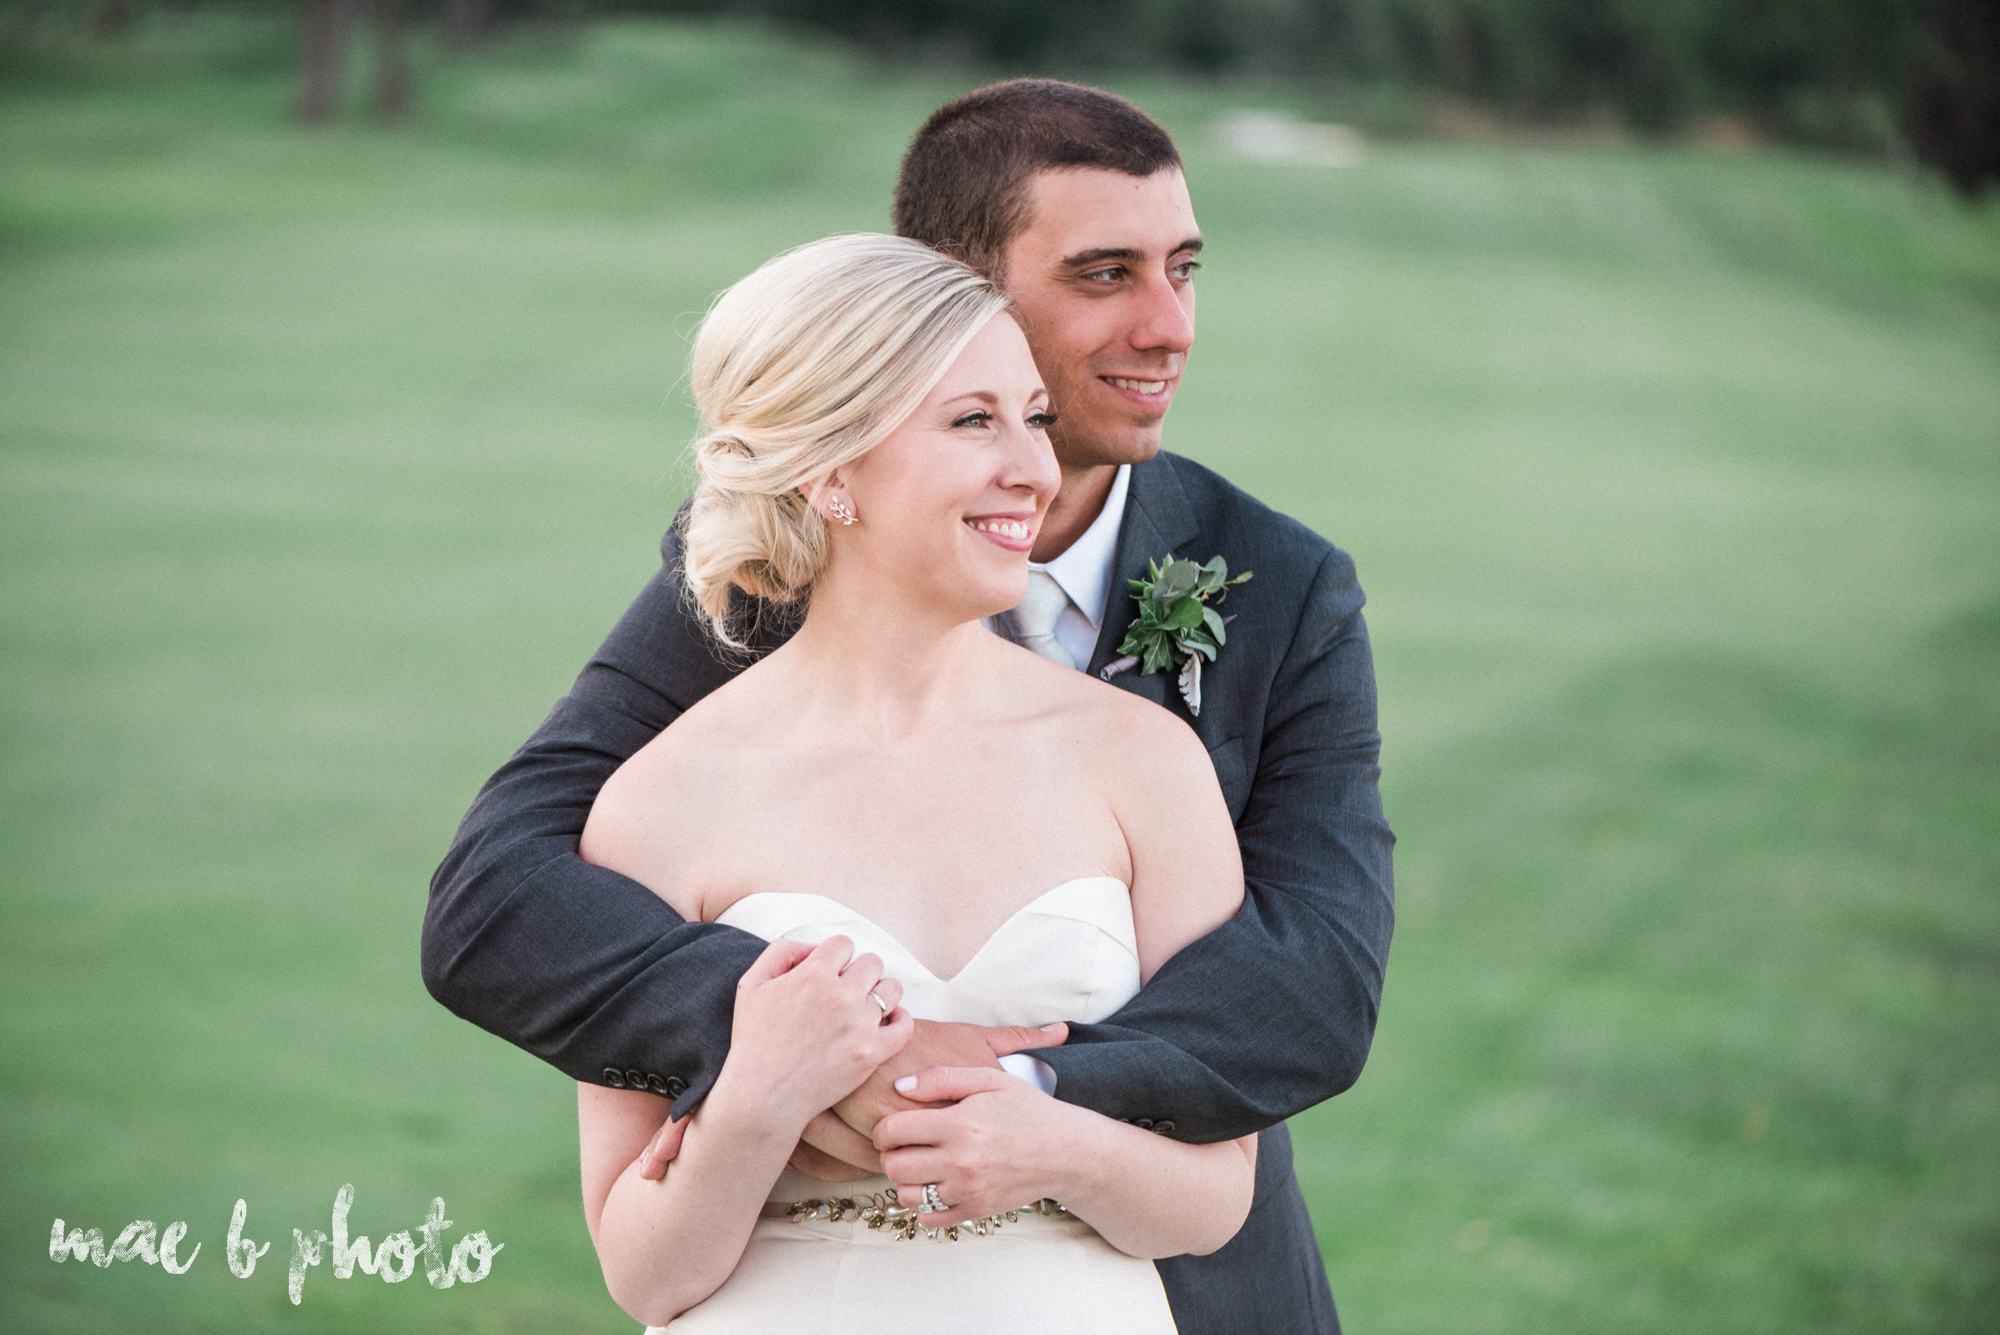 emily and michael's industrial chic summer country club wedding at the lake club in poland ohio photographed by cleveland wedding photographer mae b photo-125.jpg